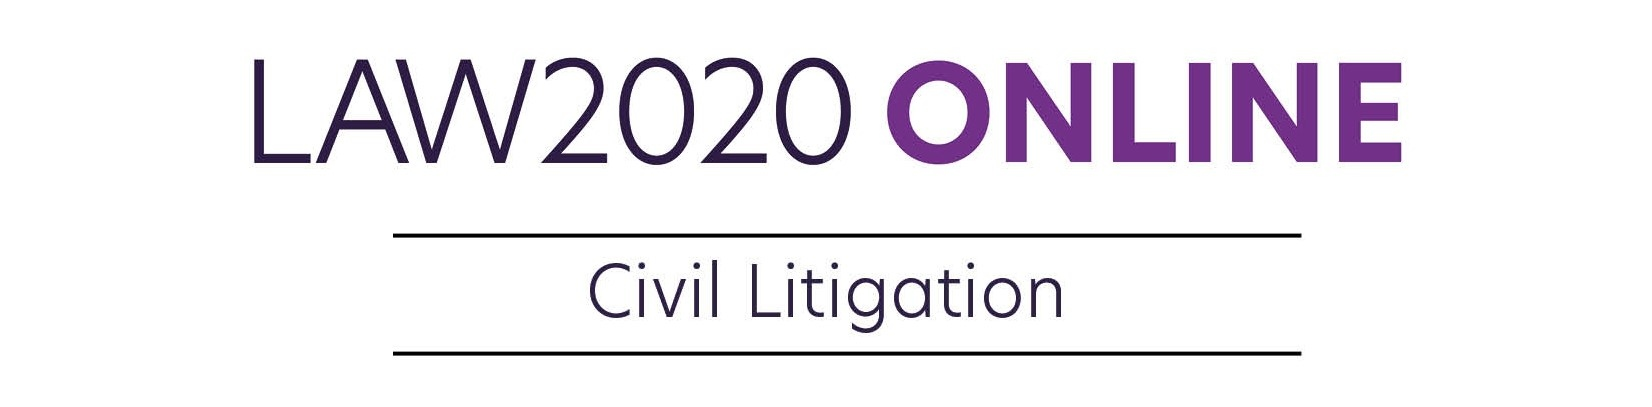 LAW2020 Online Civil Litigation